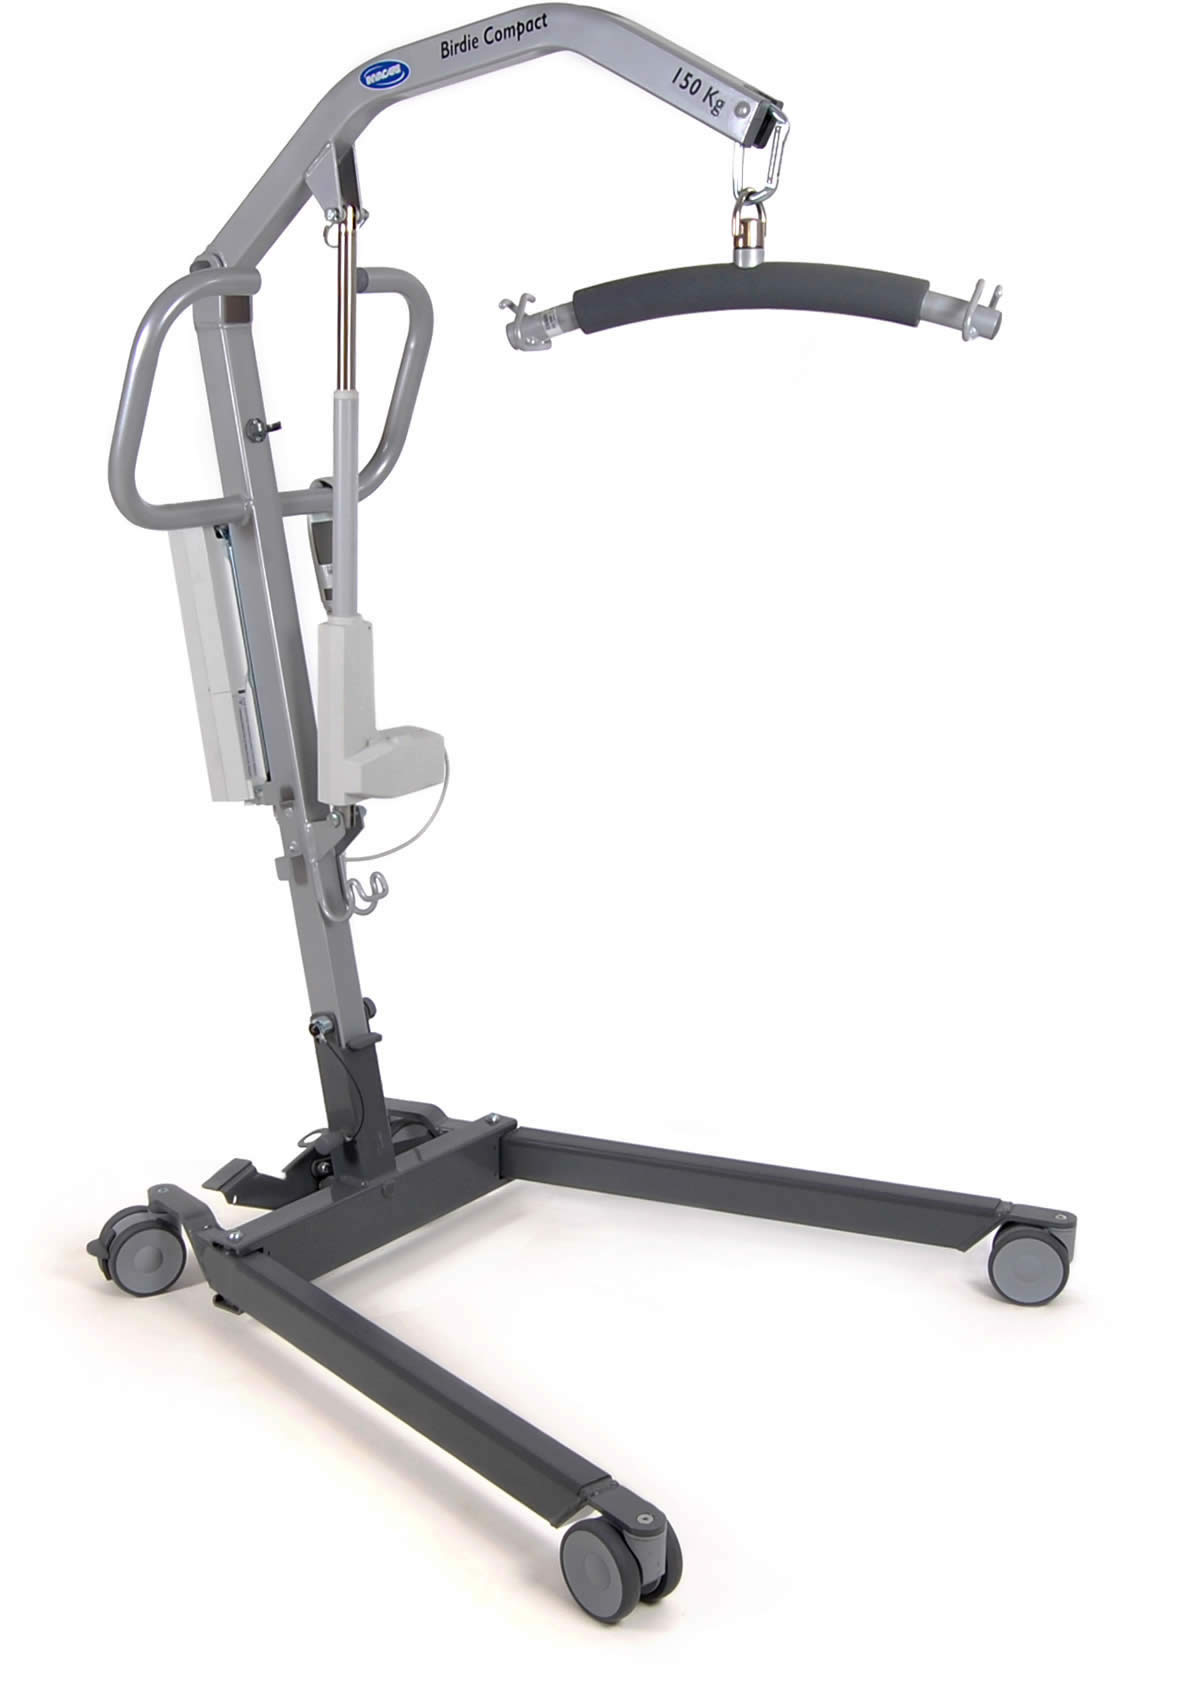 Unfolded Birdie 150 Compact Lifter